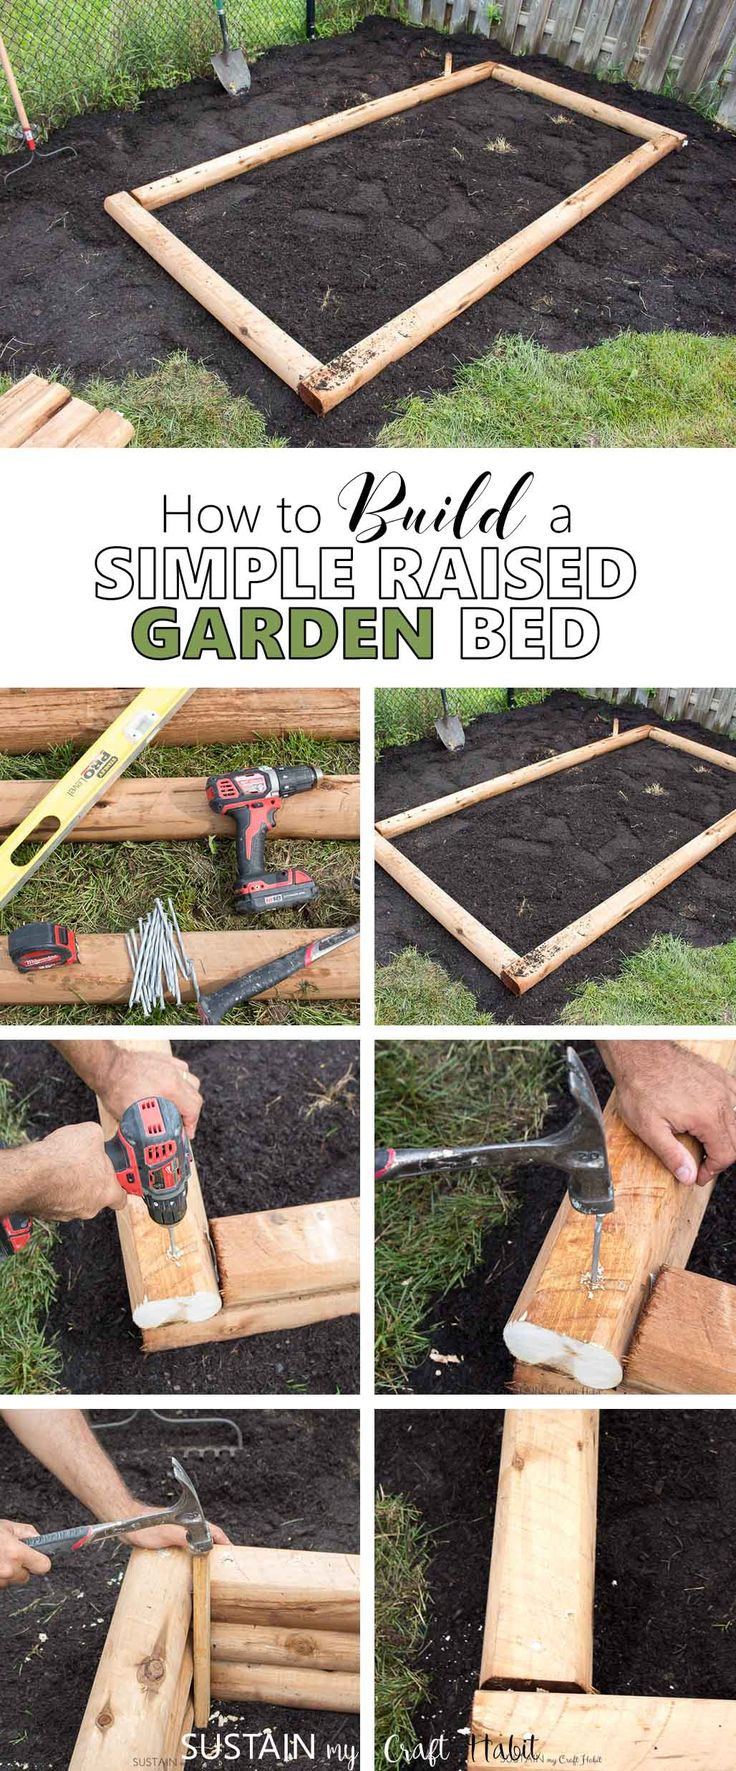 Grow vegetables in your own backyard! Simple tutorial to build an easy raised garden bed with mini railway ties. Perfect for small yards!